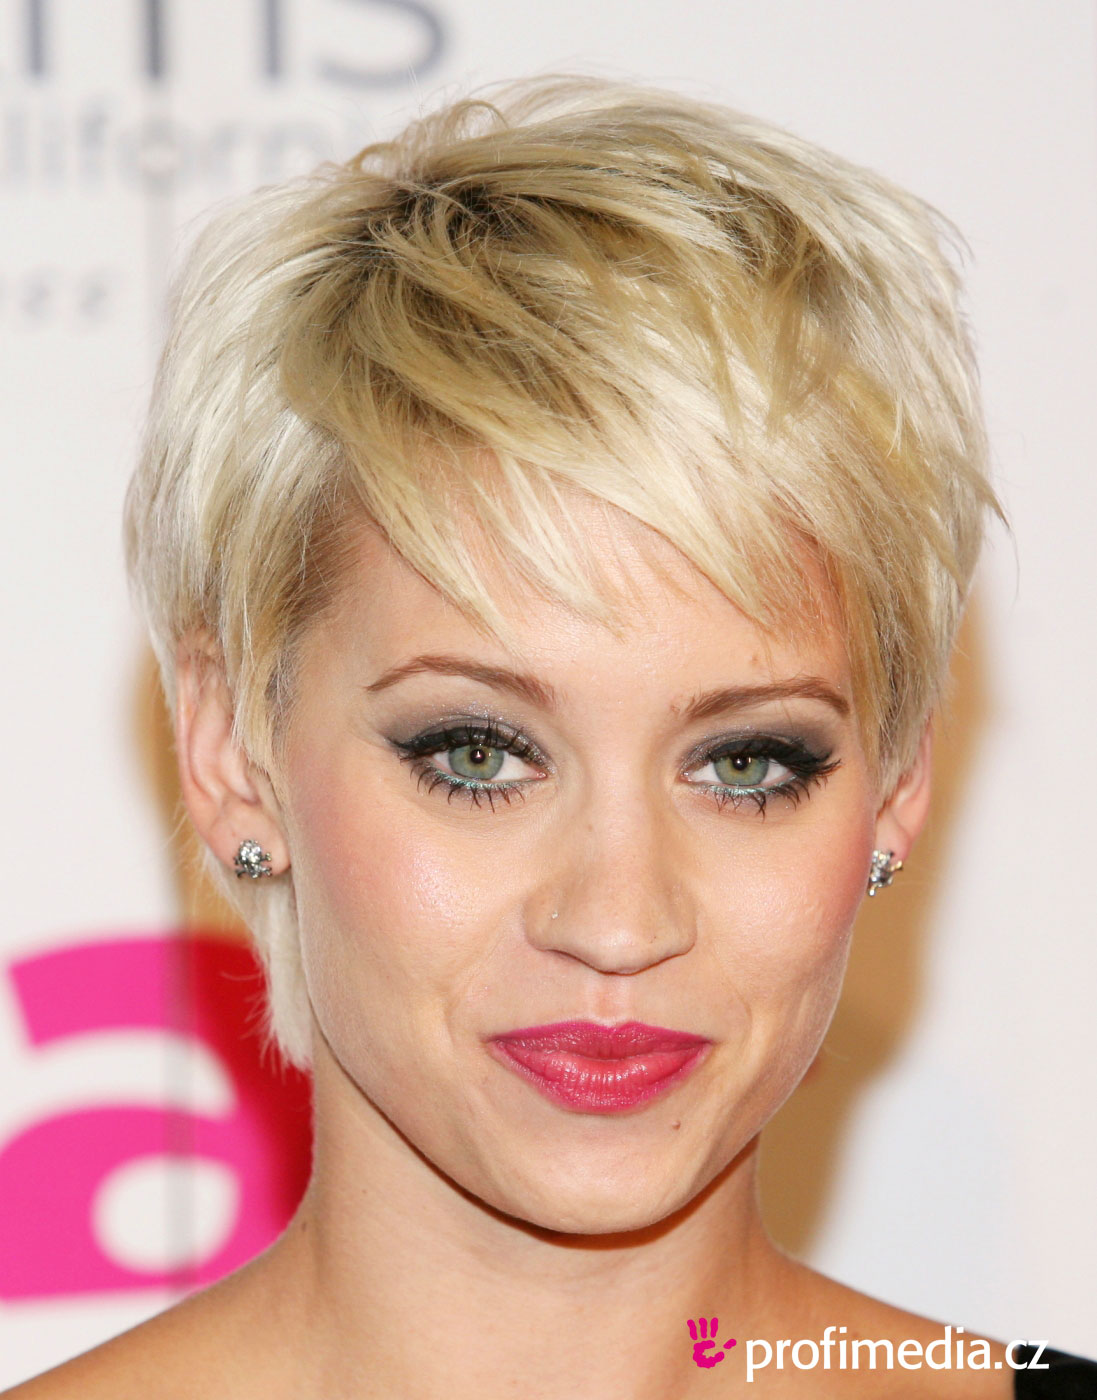 HD wallpapers hairstyles for heart shaped face 2014